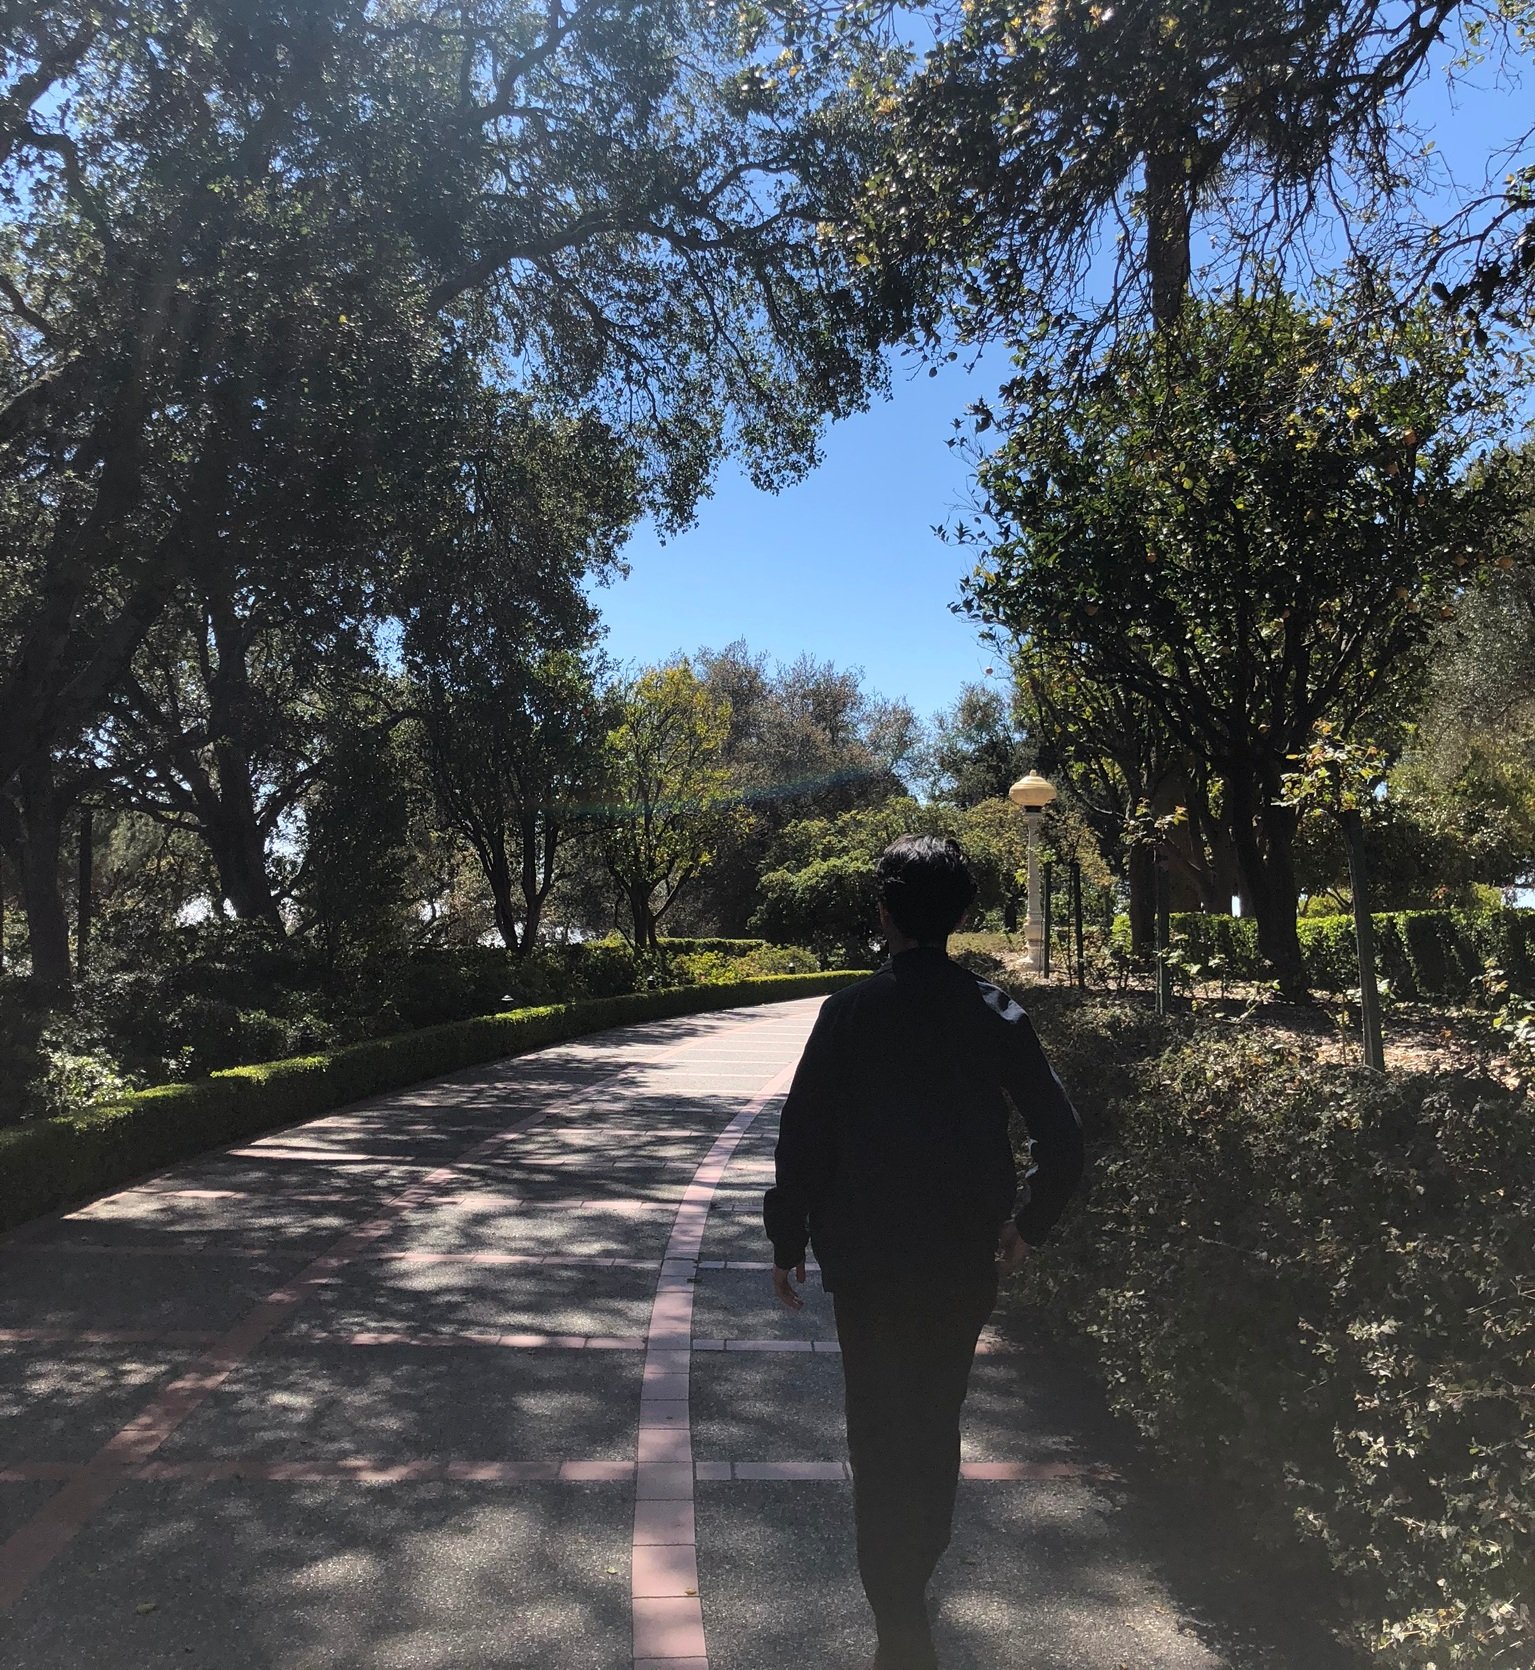 Anthony Pong strolls around Hearst Castle, looking at the sights. Photo by Emma Donnelly.